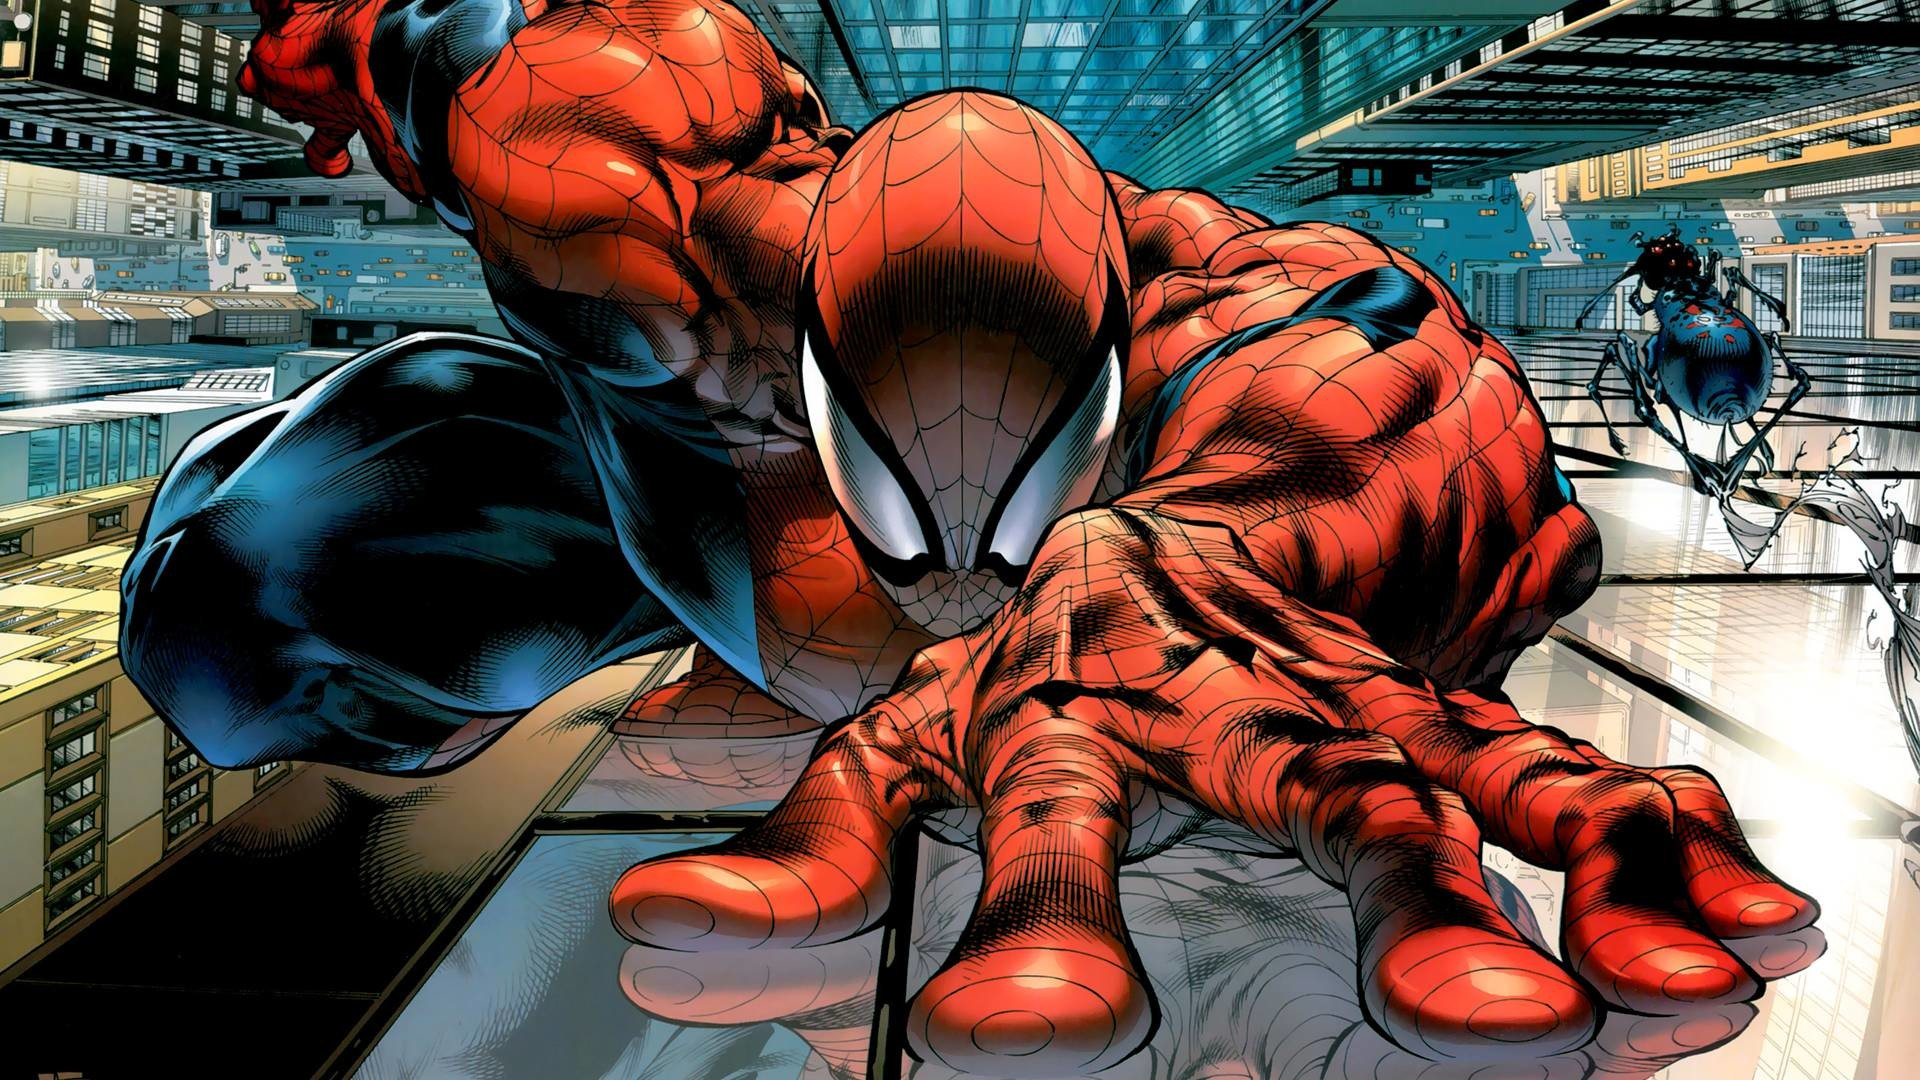 1920x1080 Amazing Spiderman HD wallpaper from Marvel